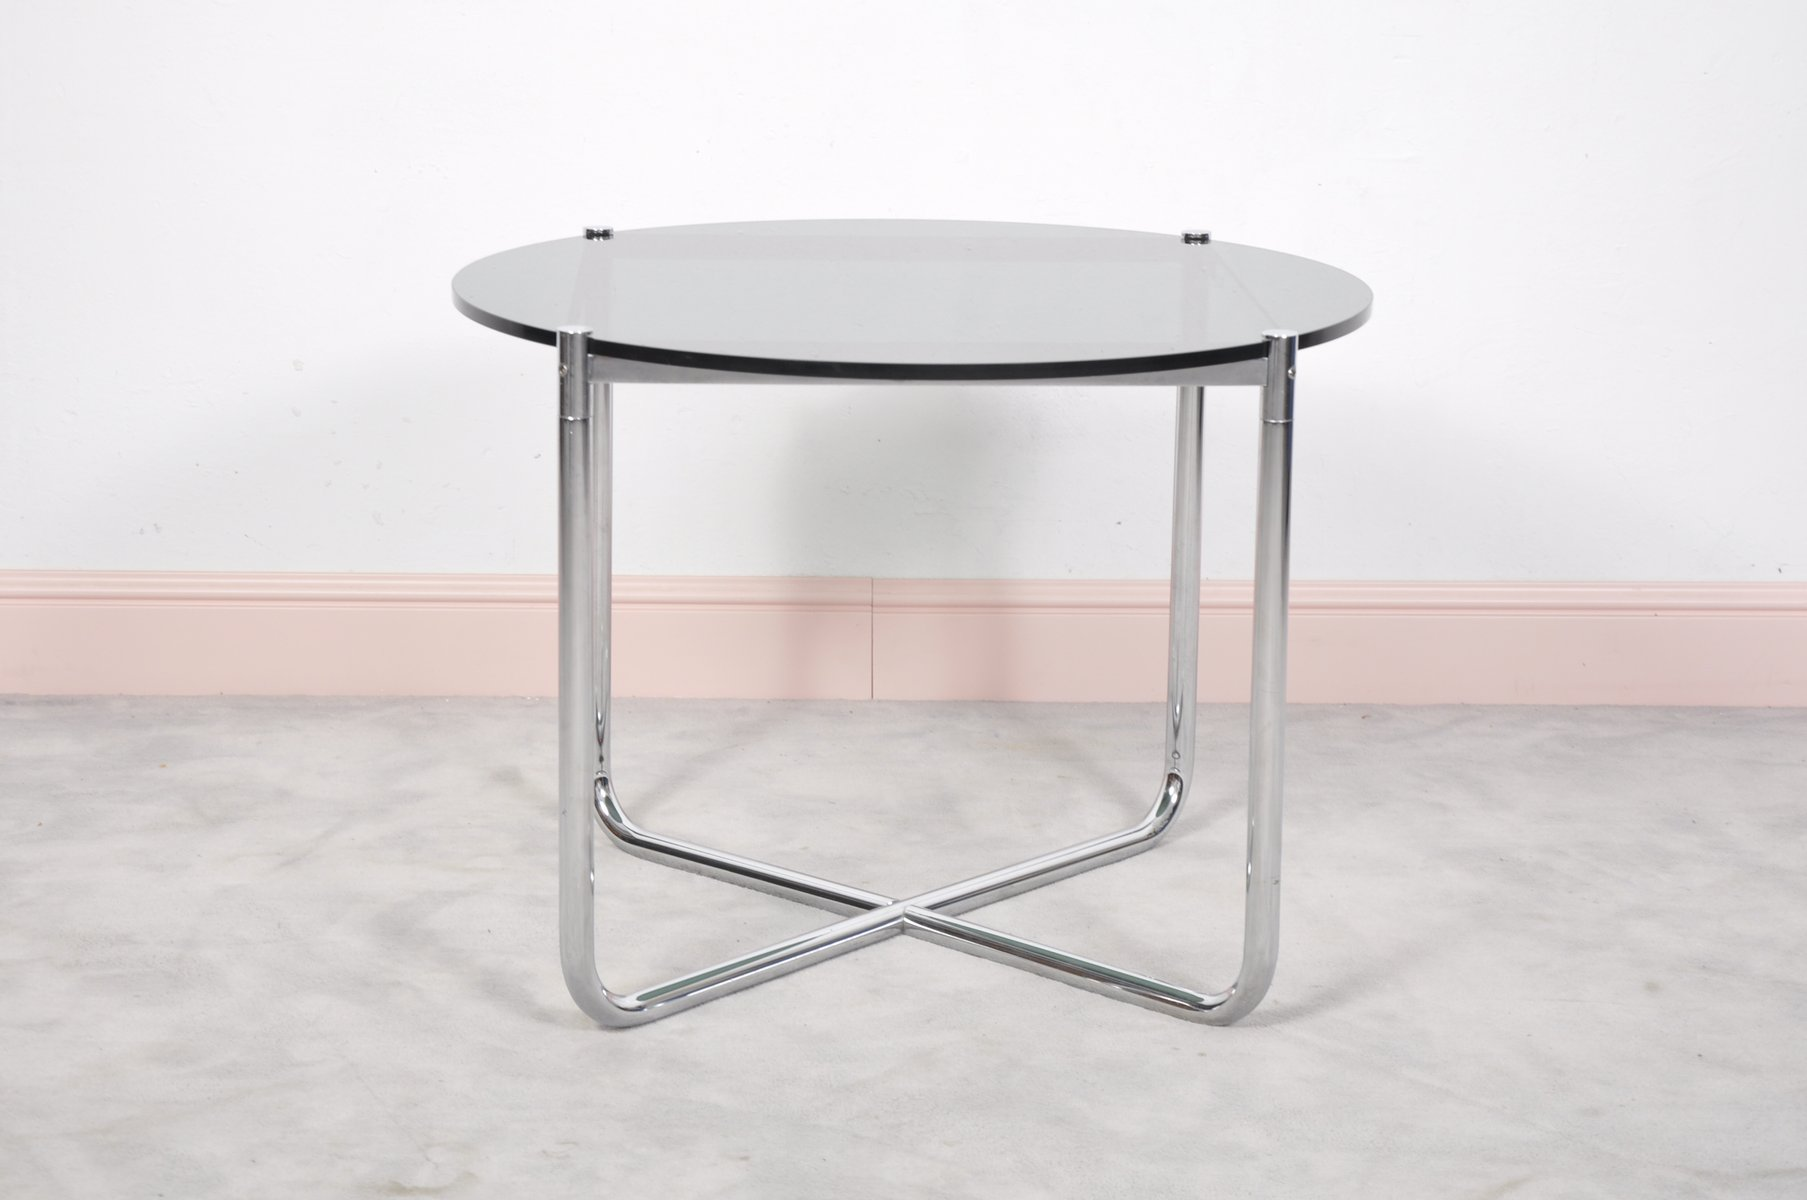 MR Side Table by Ludwig Mies van der Rohe for Knoll International